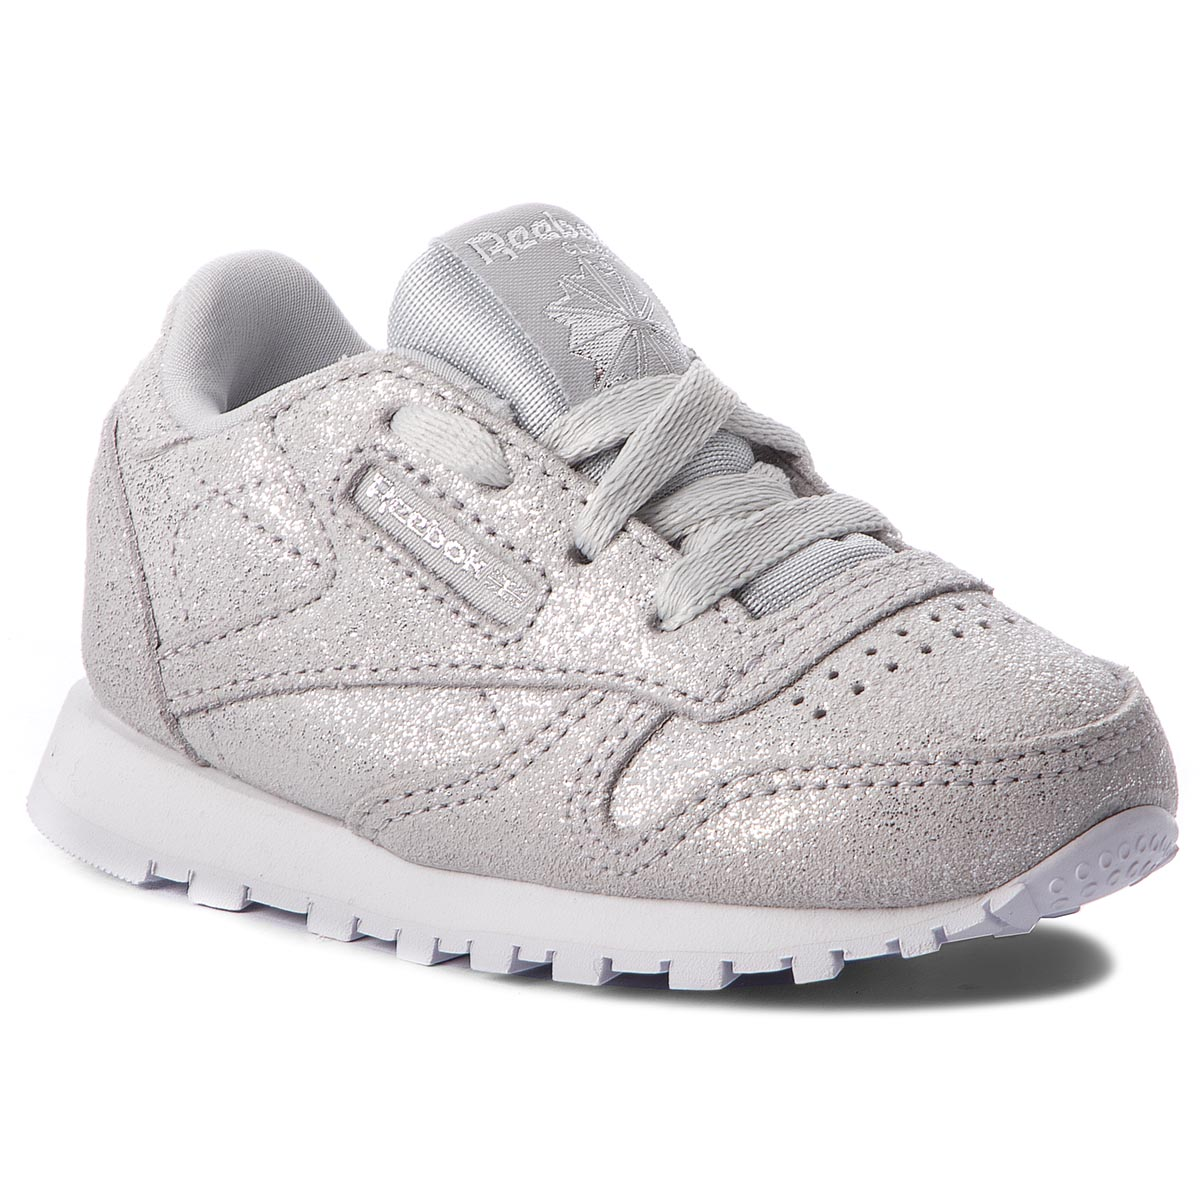 4f095c87a4b Shoes Reebok - Classic Leather Metallic BS7459 Silver White - Laced ...